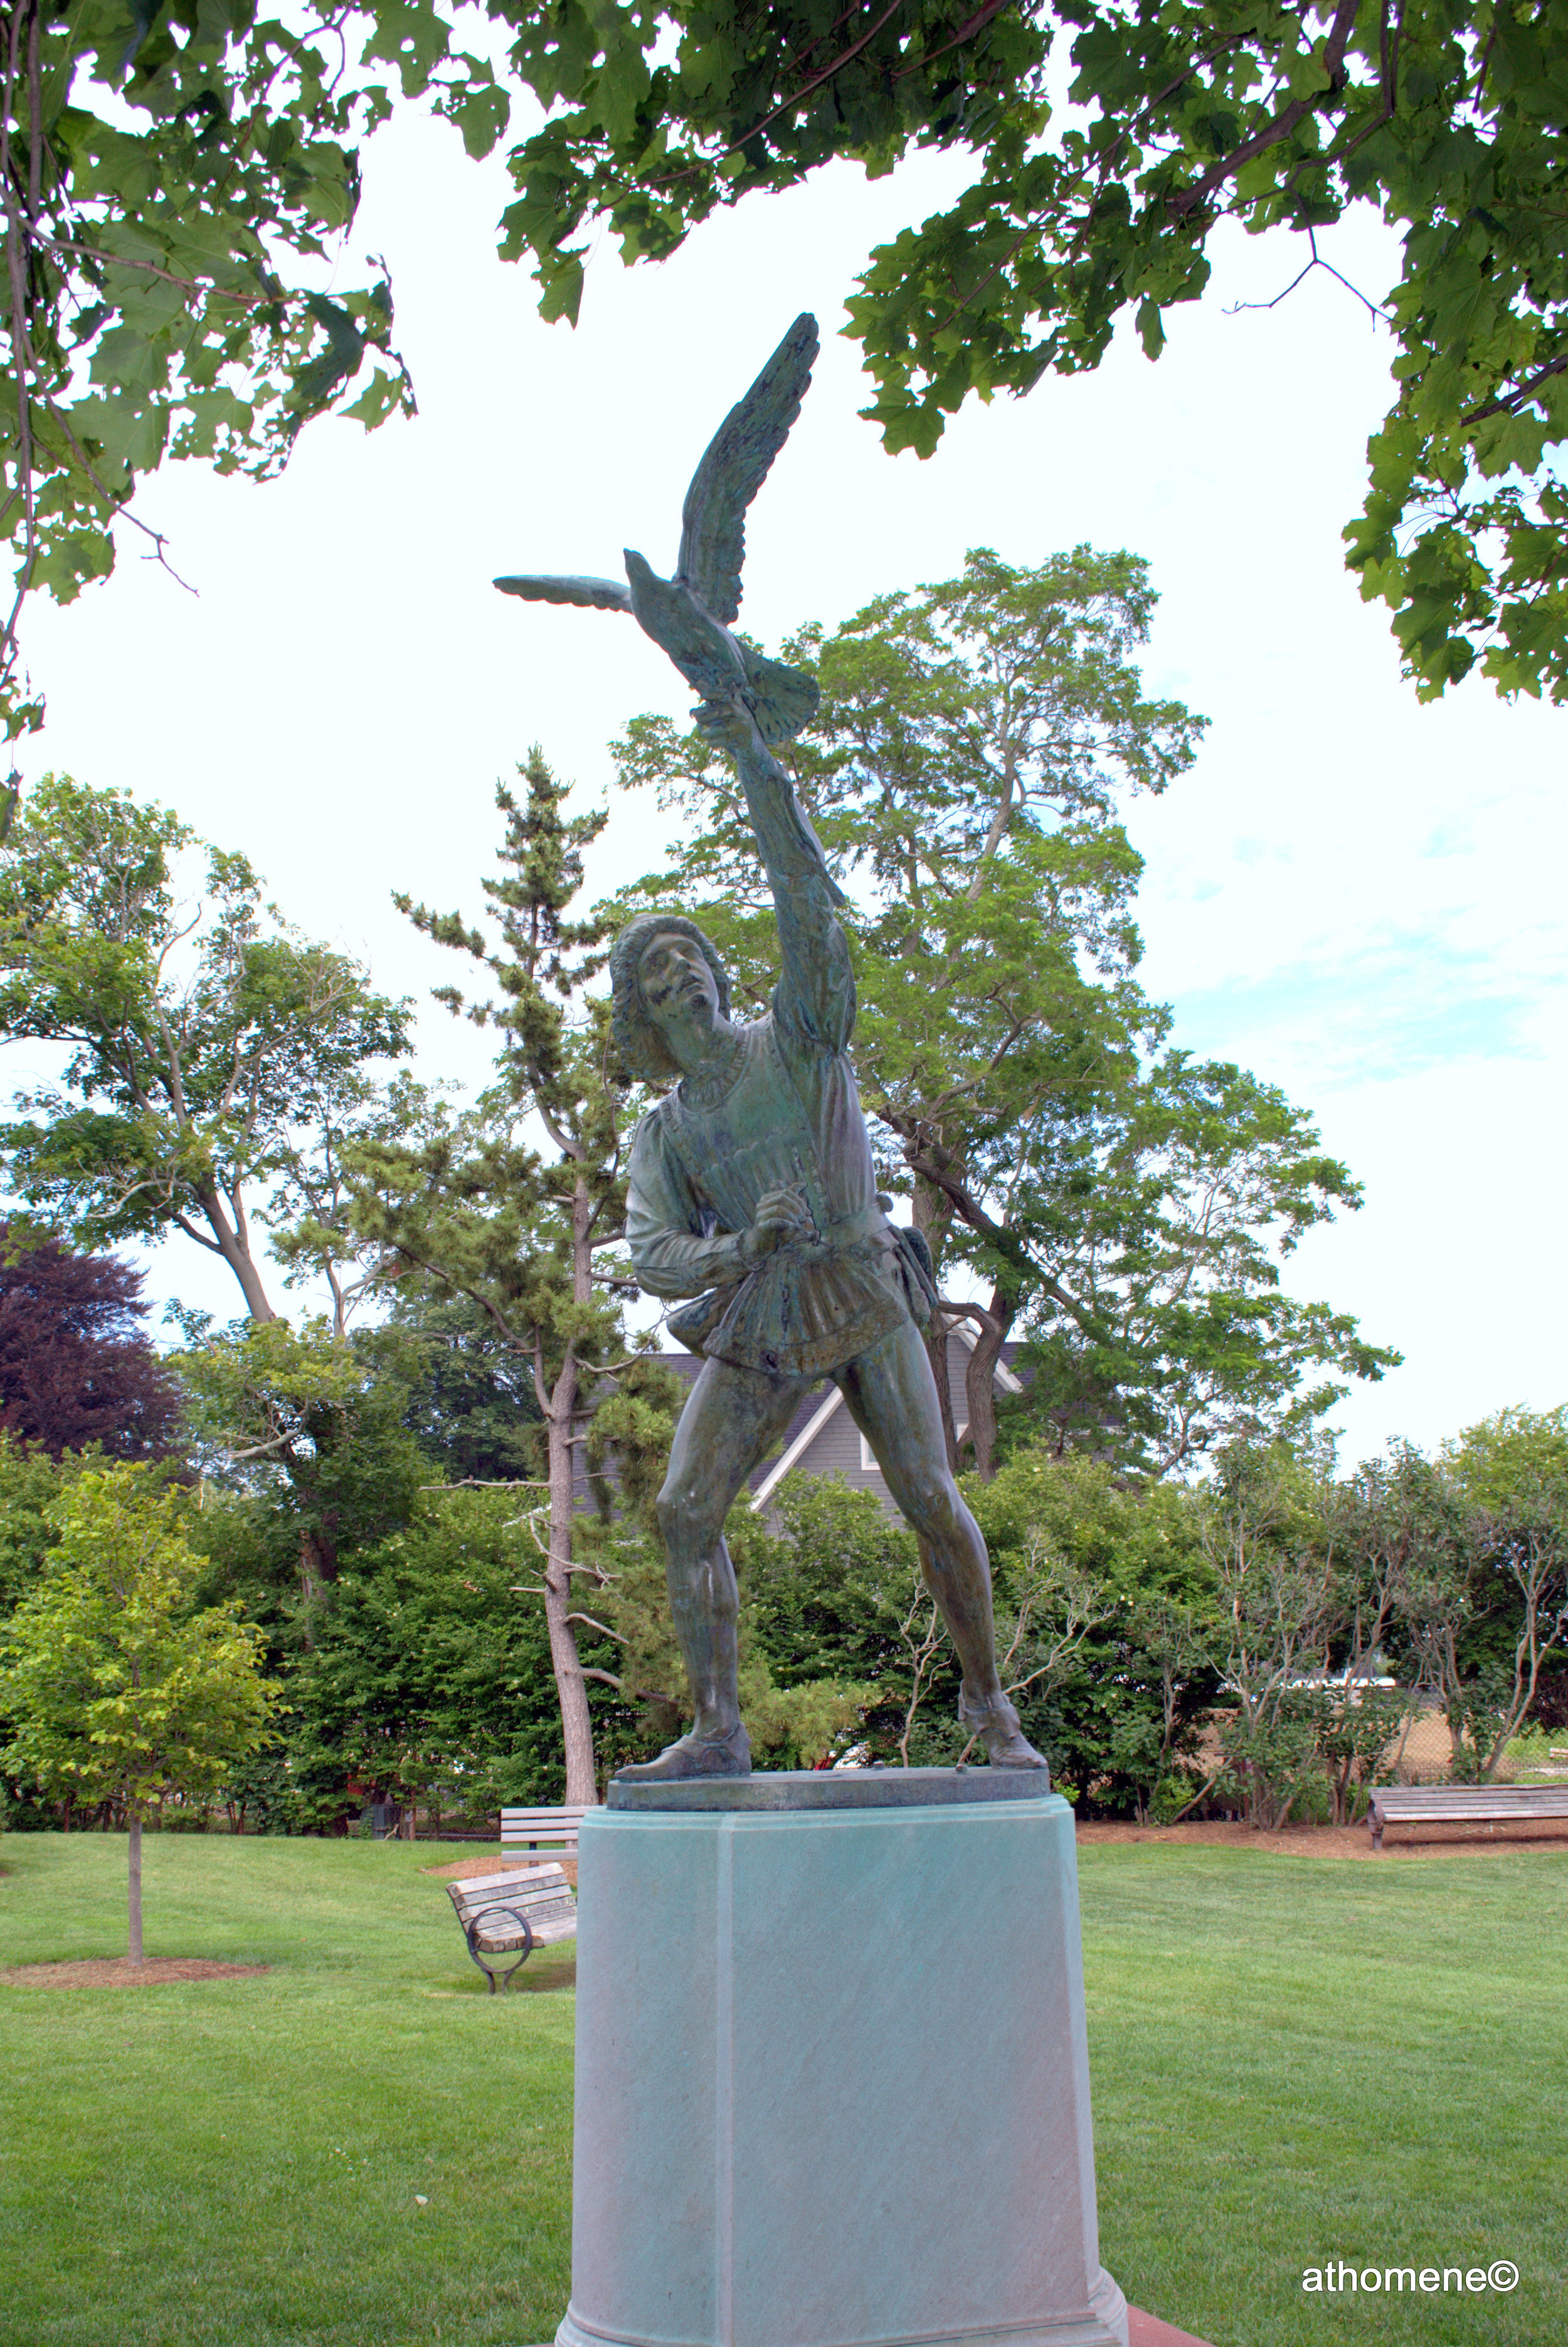 The Falconer, this statue was modeled after the original in Central Park in New York City.